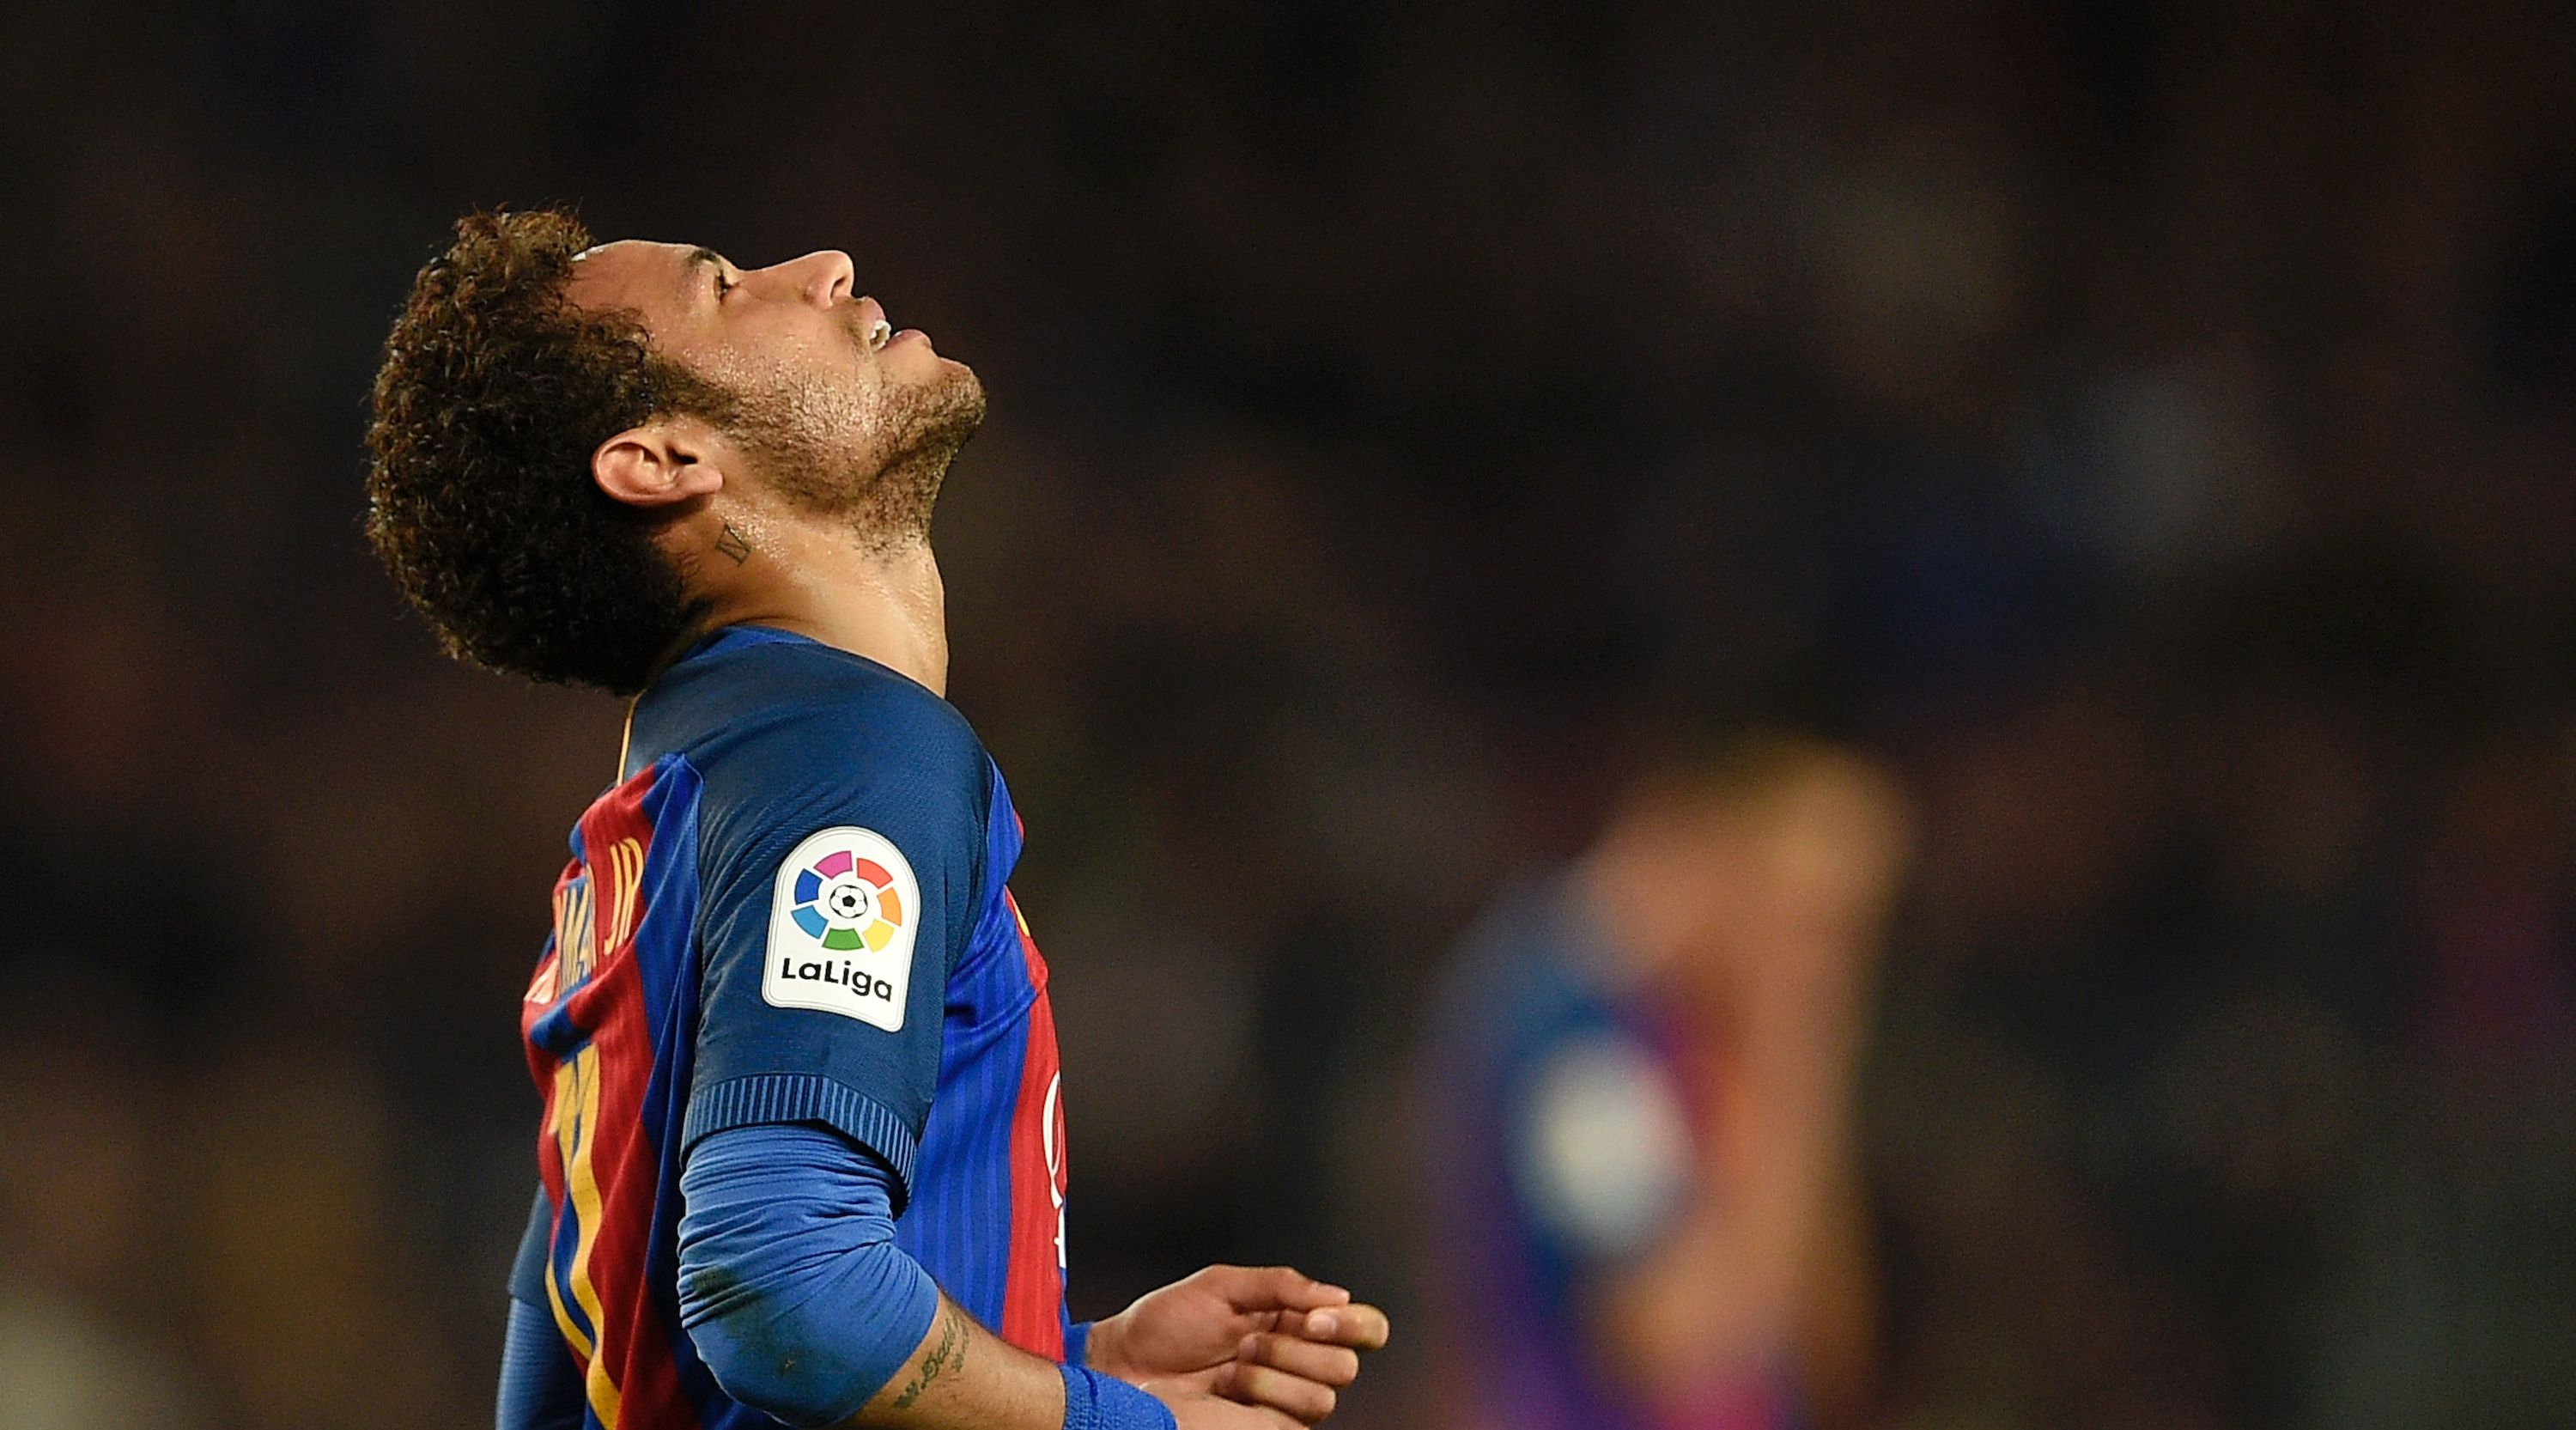 Barcelona's Brazilian forward Neymar looks skywards during the Spanish league football match FC Barcelona vs Valencia CF at the Camp Nou stadium in Barcelona on March 19, 2017. / AFP PHOTO / LLUIS GENE (Photo credit should read LLUIS GENE/AFP/Getty Images)